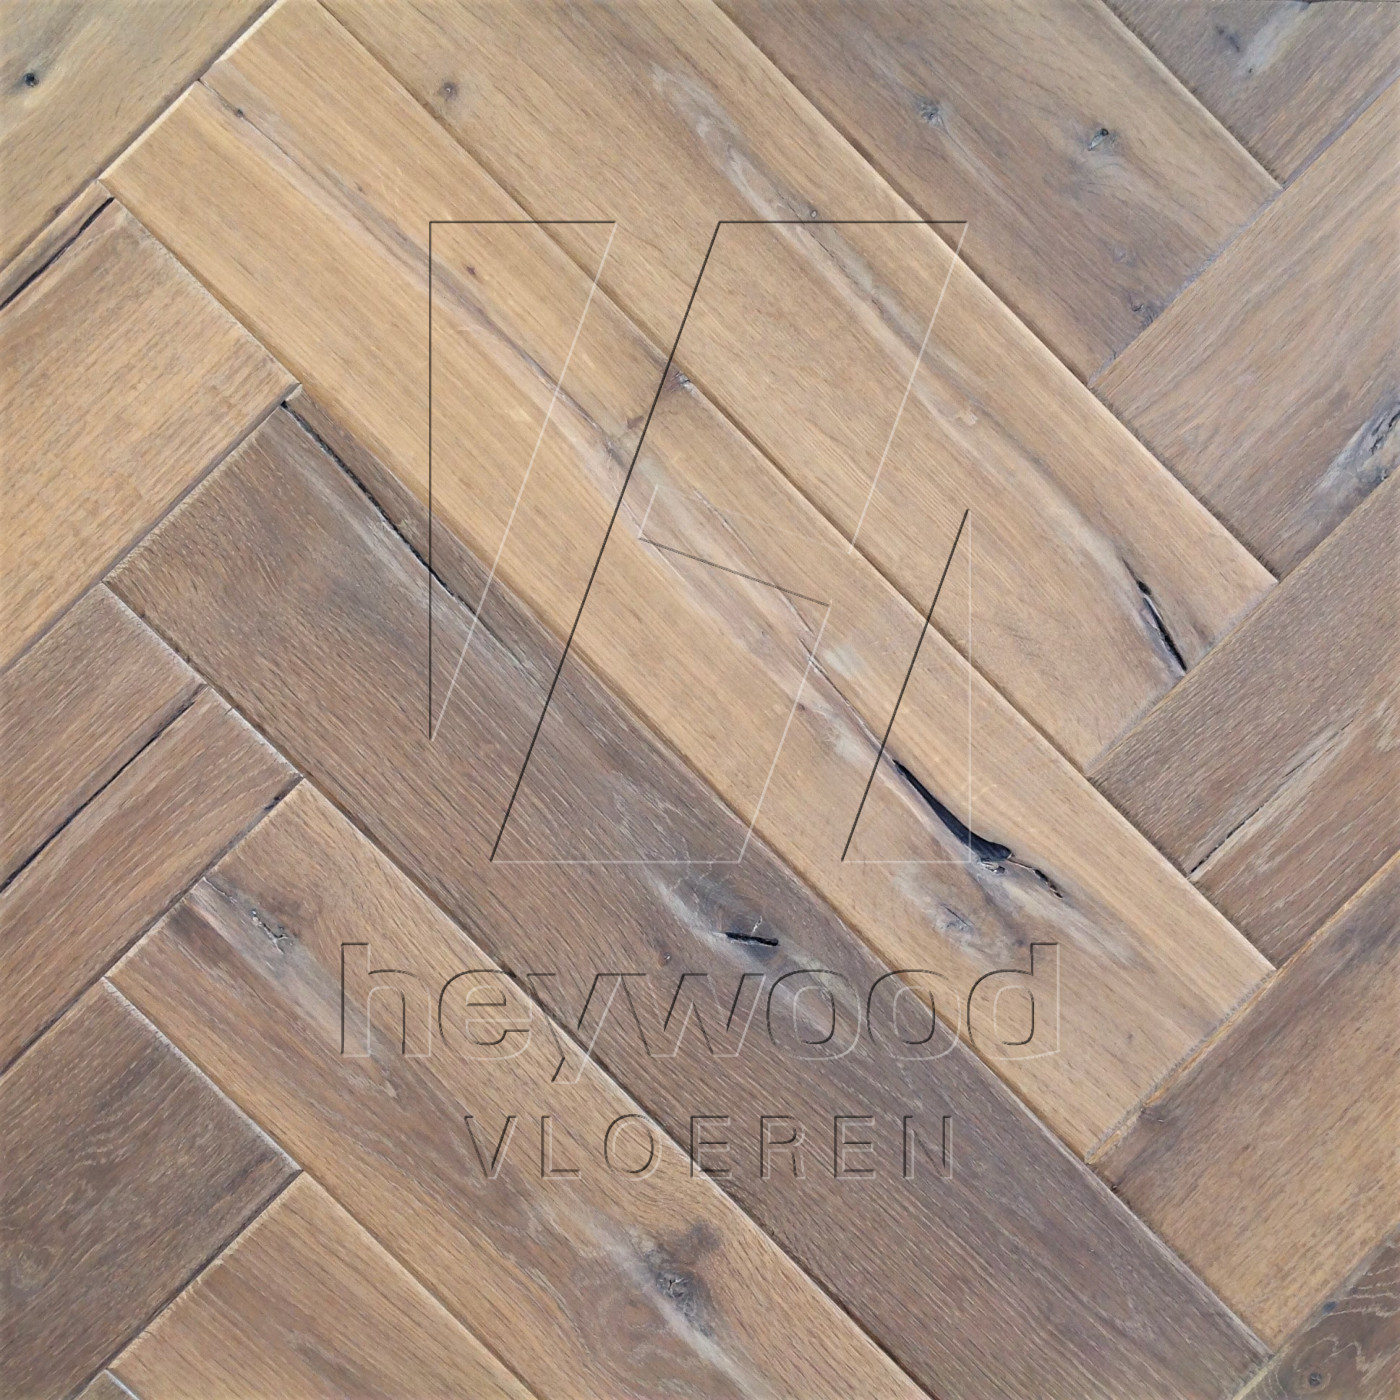 Antique Herringbone 'McKinley' in Herringbone of Pattern & Panel Floors